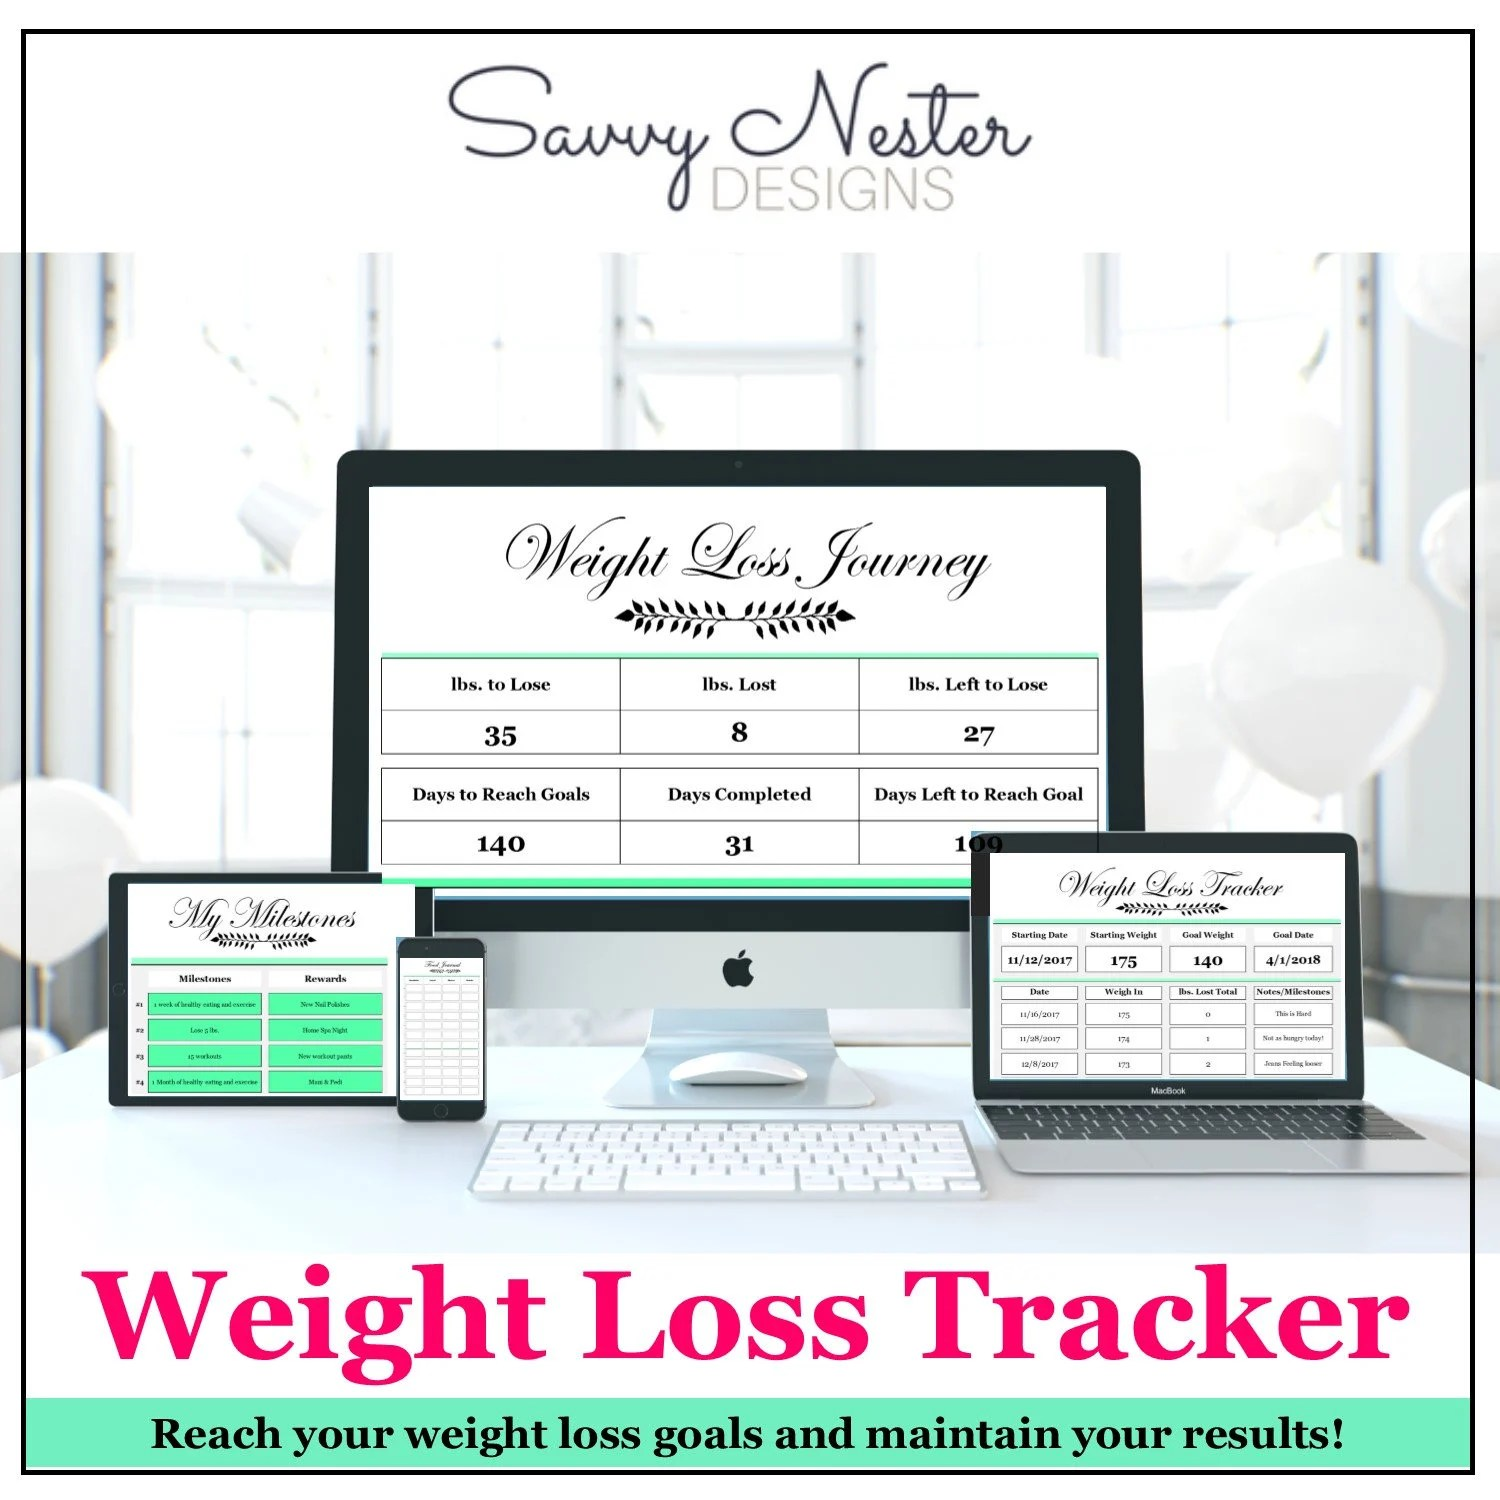 Weight loss tracker diet tracker journal food diary goal Etsy